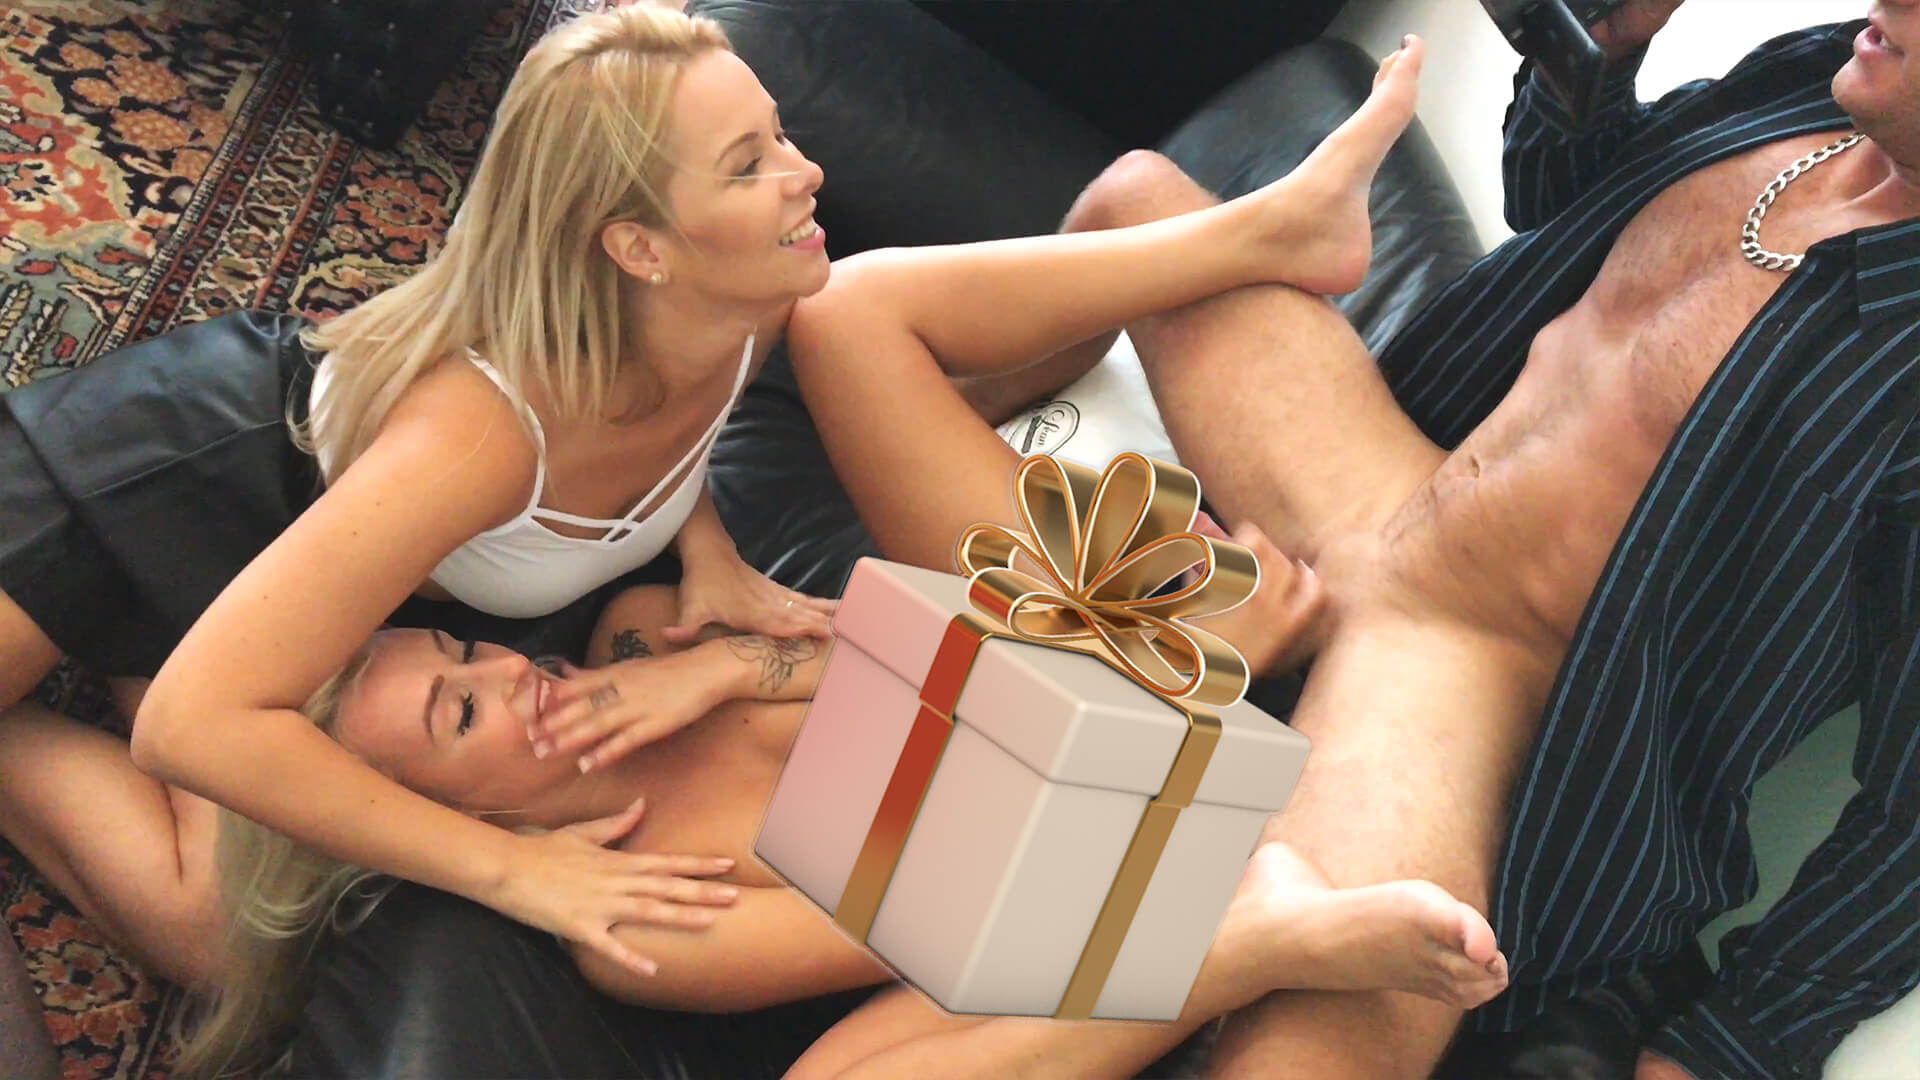 POV Handjob Secrets with Lots of Cum on Clothes directly from the Location with Daisy and Carolina – a Love The Porn EXTRA in 4K, Full HD and 720p